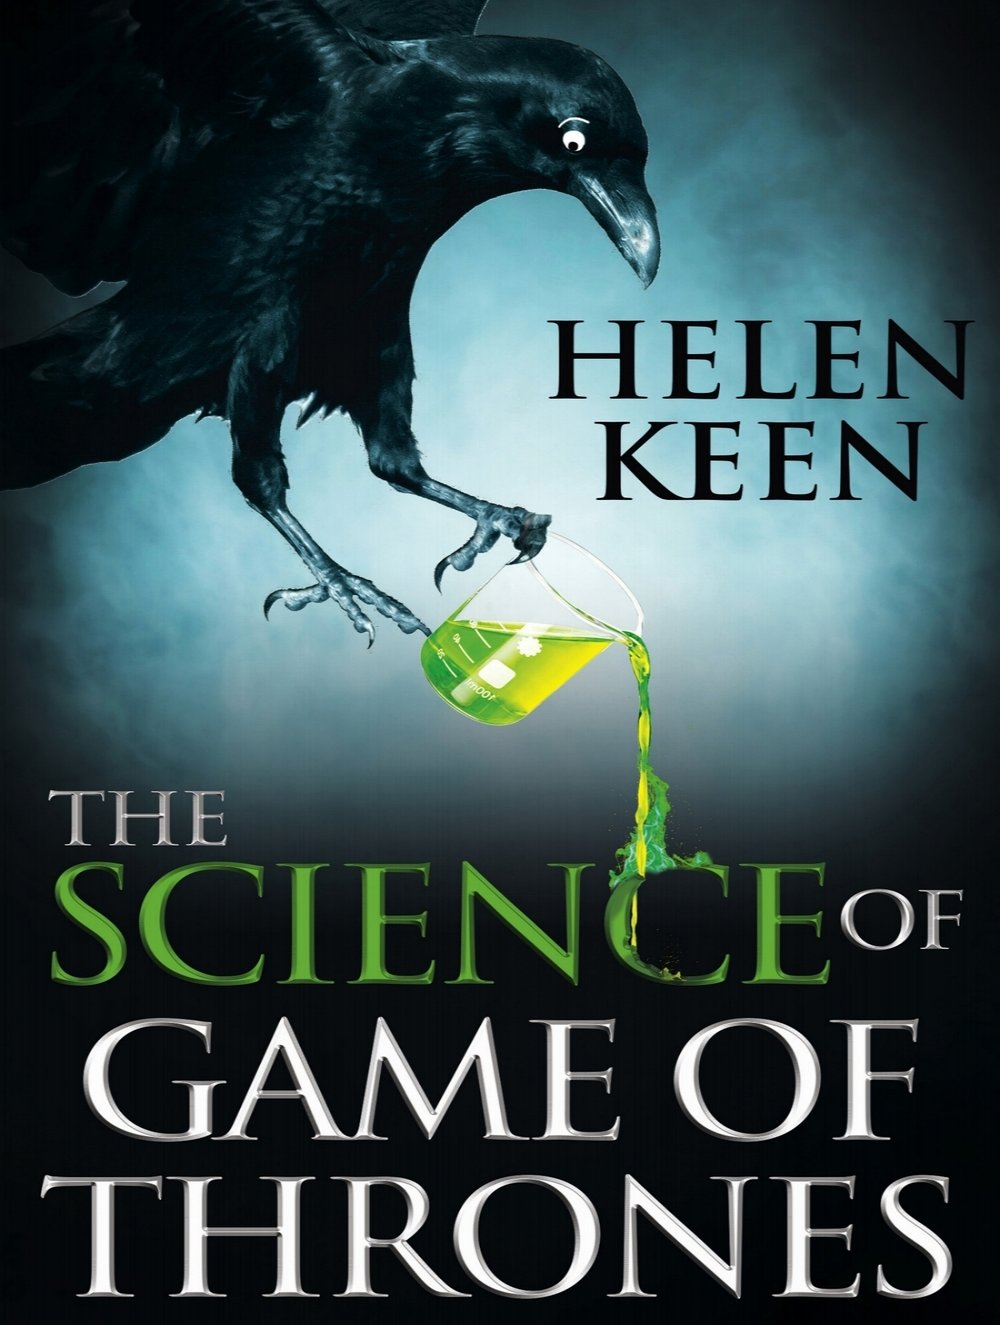 - In 2016 Helen wrote The Science of Game of Thrones (published by Coronet in the UK). Described as a myth-busting, mind-blowing, jaw-dropping, fun-filled literary expedition through the Seven Kingdoms and beyond, it has since been translated into numerous languages,The book formed the basis for an episode of National Geographic's television show StarTalk, with Helen joining host Neil deGrasse Tyson to discuss her work. Excerpts - including a discussion of wildfire - were adapted for TIME magazine.Helen has also co-created live shows and panel discussions around the book, and presented these at several venues, including The Royal Institution, The Edinburgh International Science Festival and QEDCon,